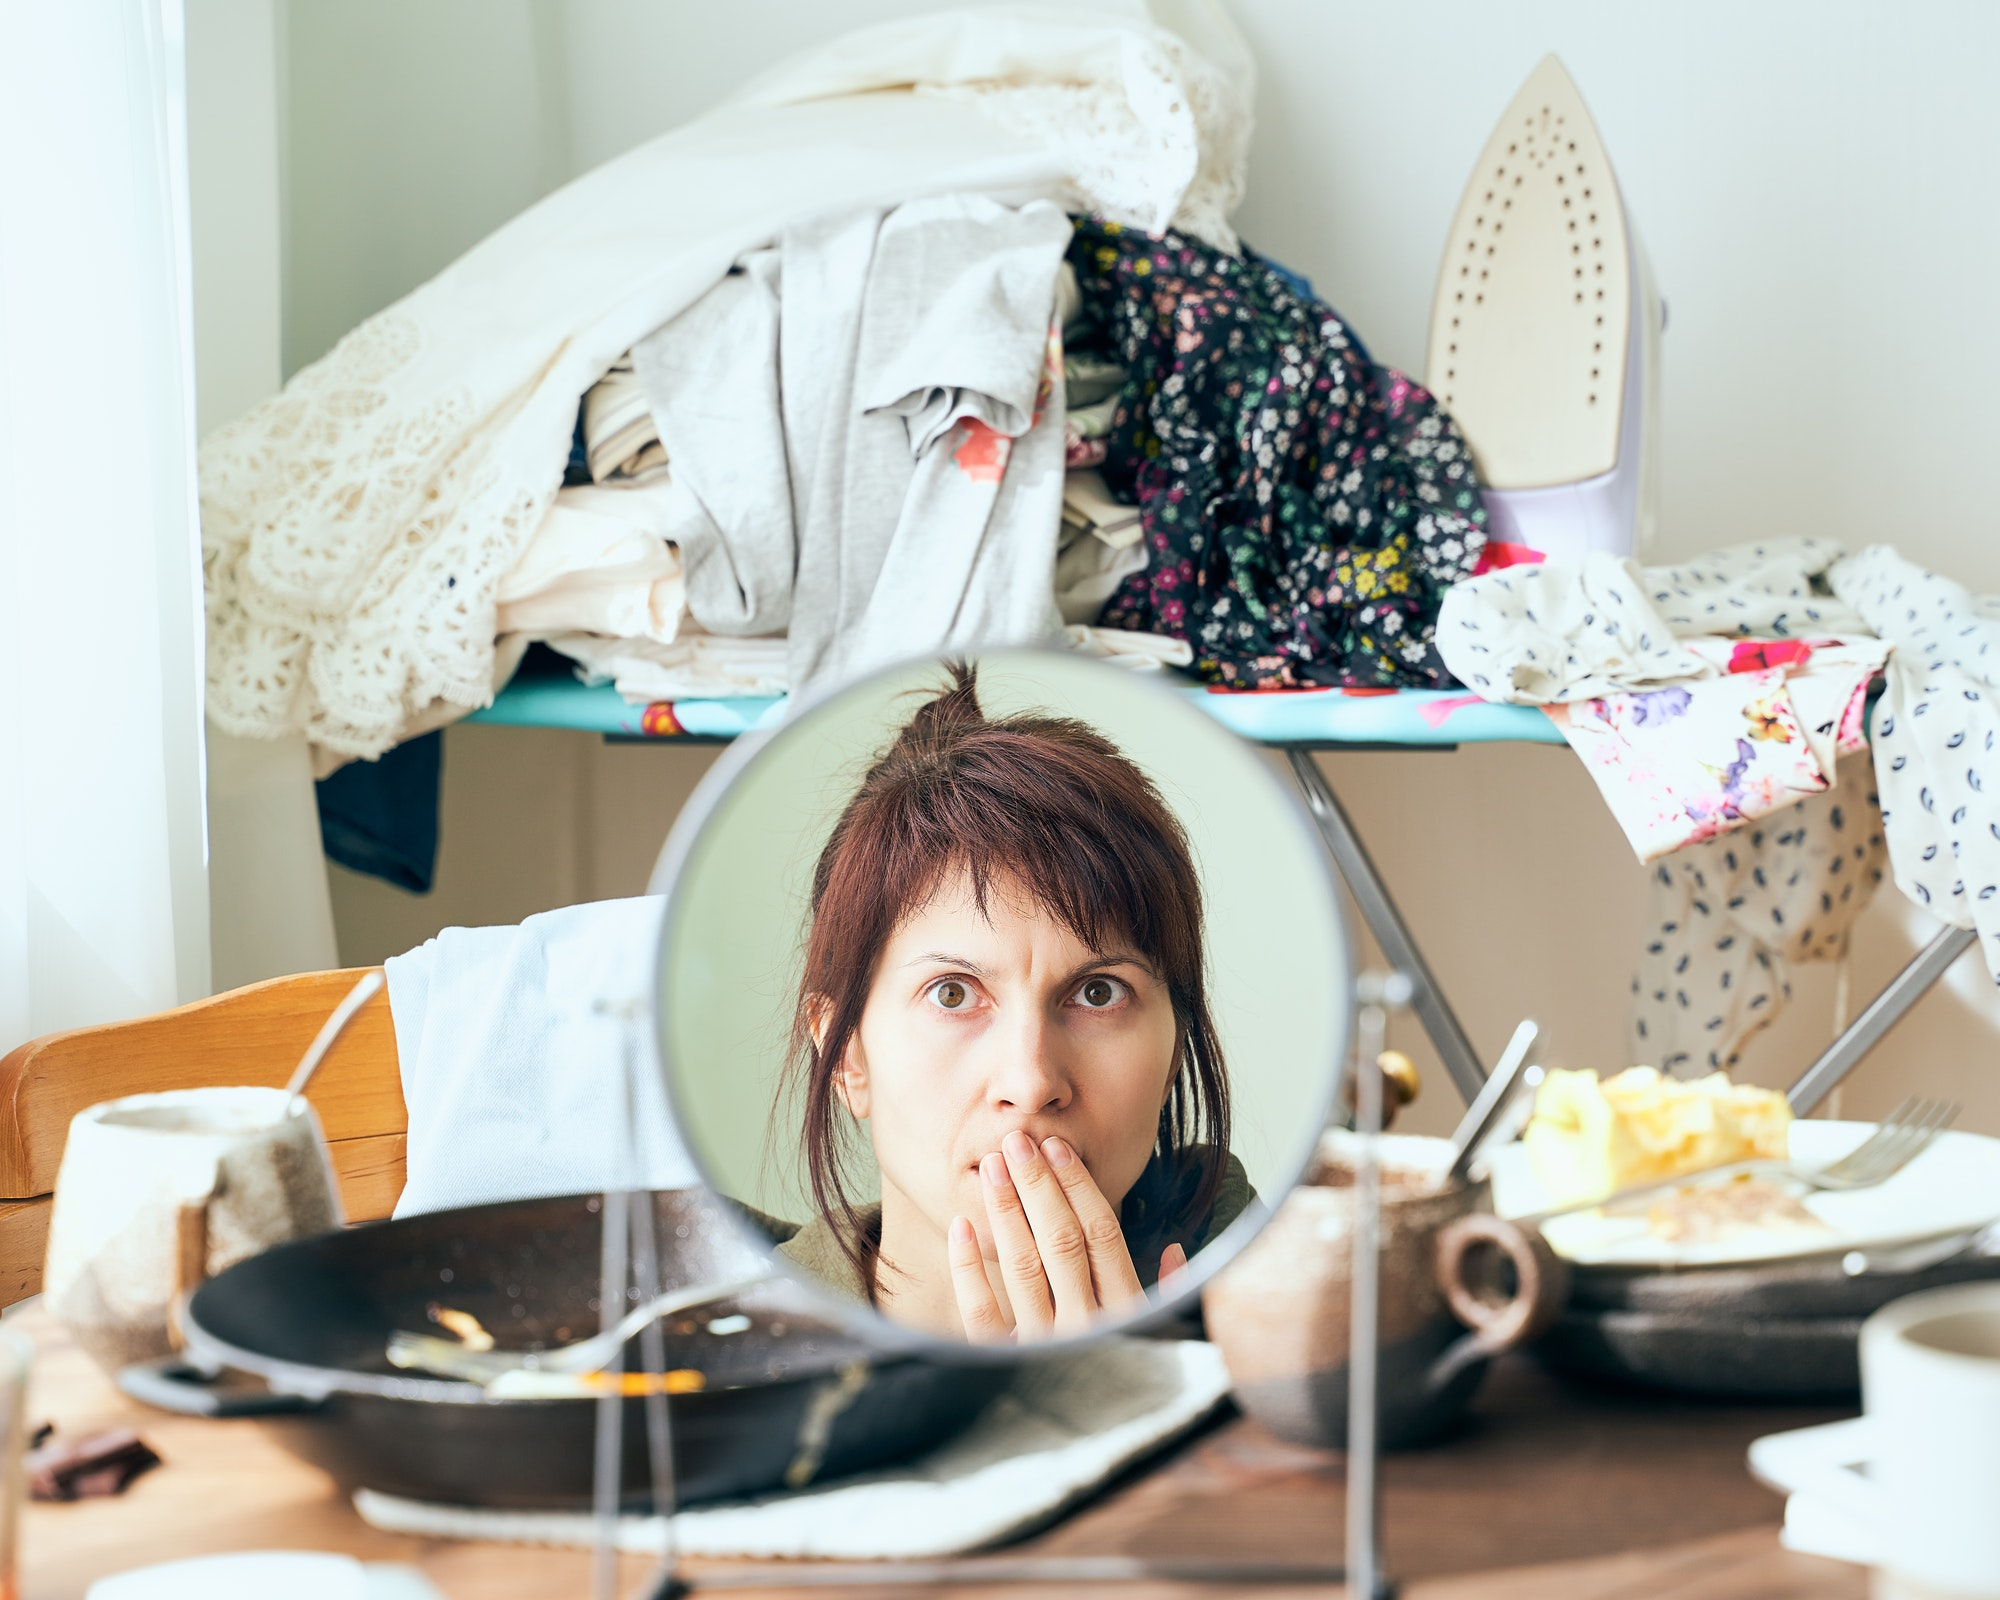 Woman looks with horror and fright at herself in mirror against background of mess